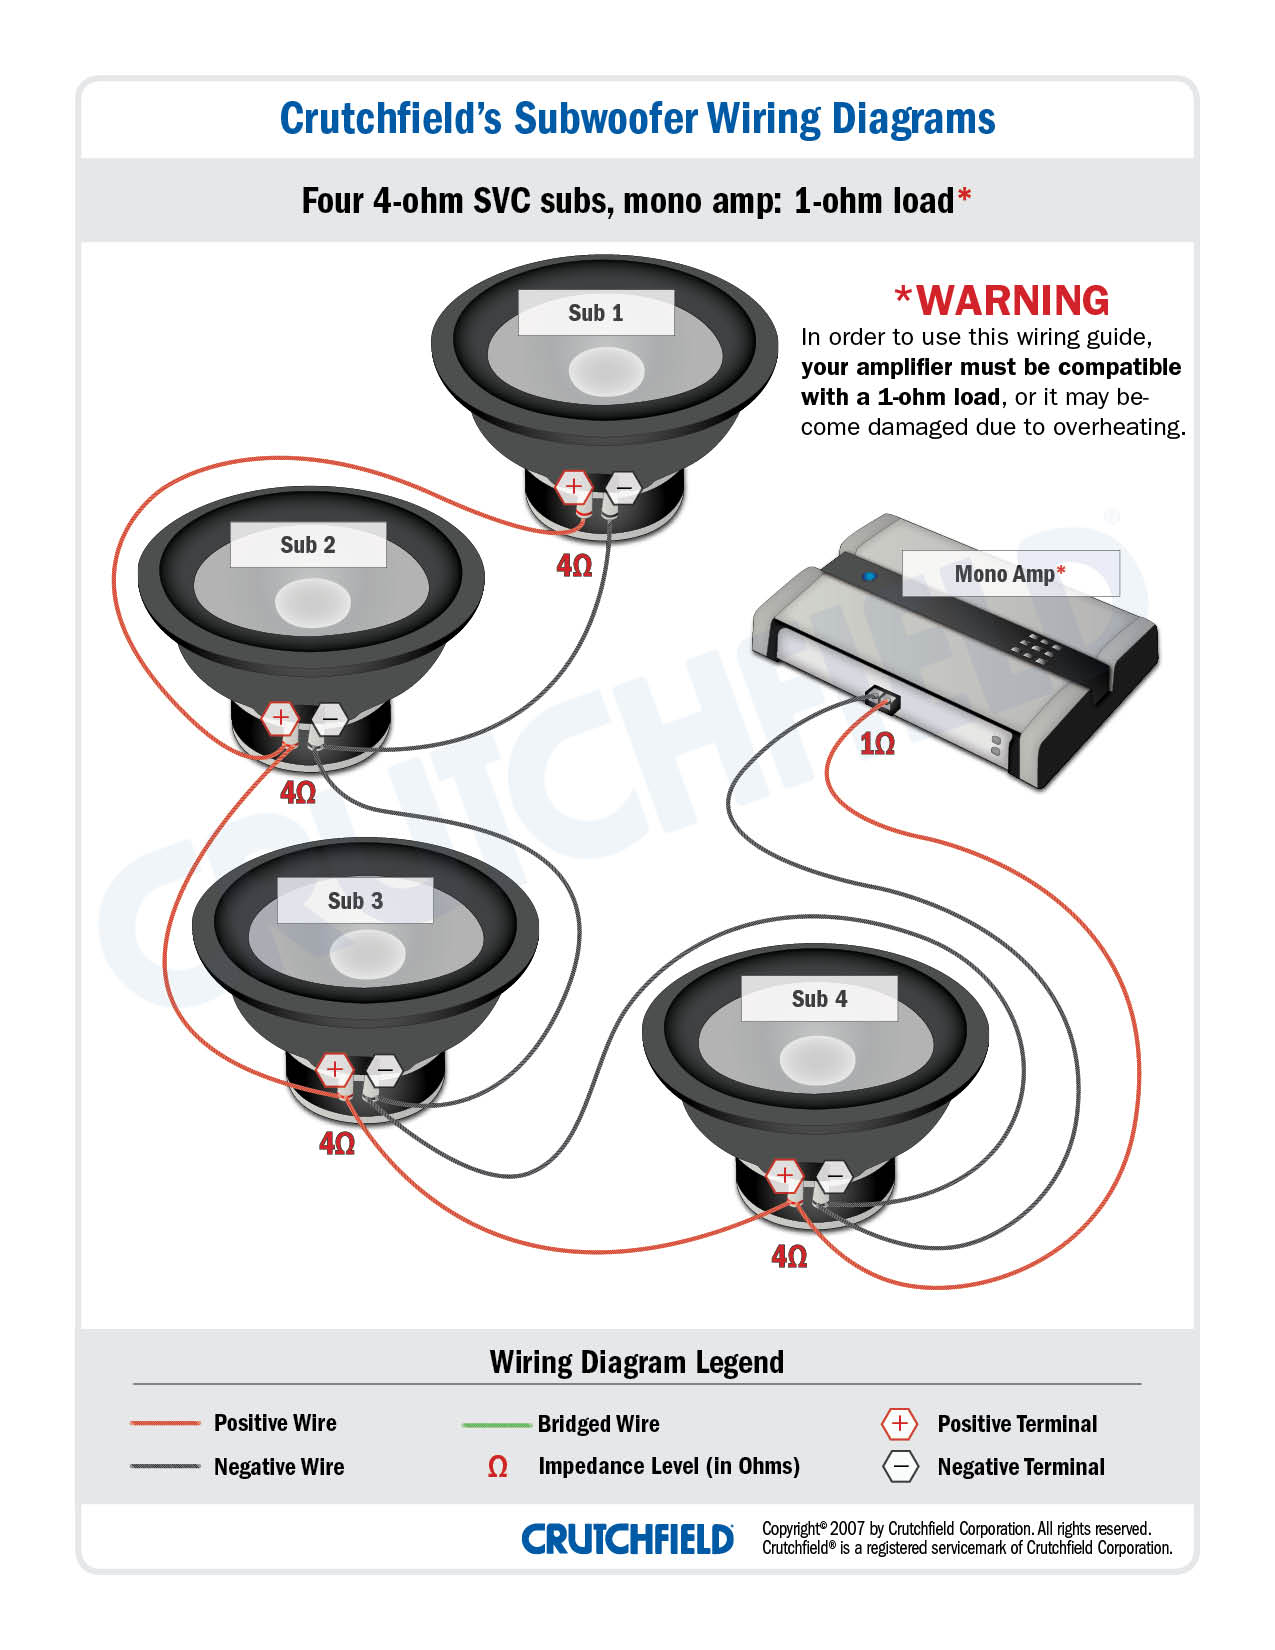 Astonishing Subwoofer Wiring Diagrams How To Wire Your Subs Wiring Cloud Vieworaidewilluminateatxorg